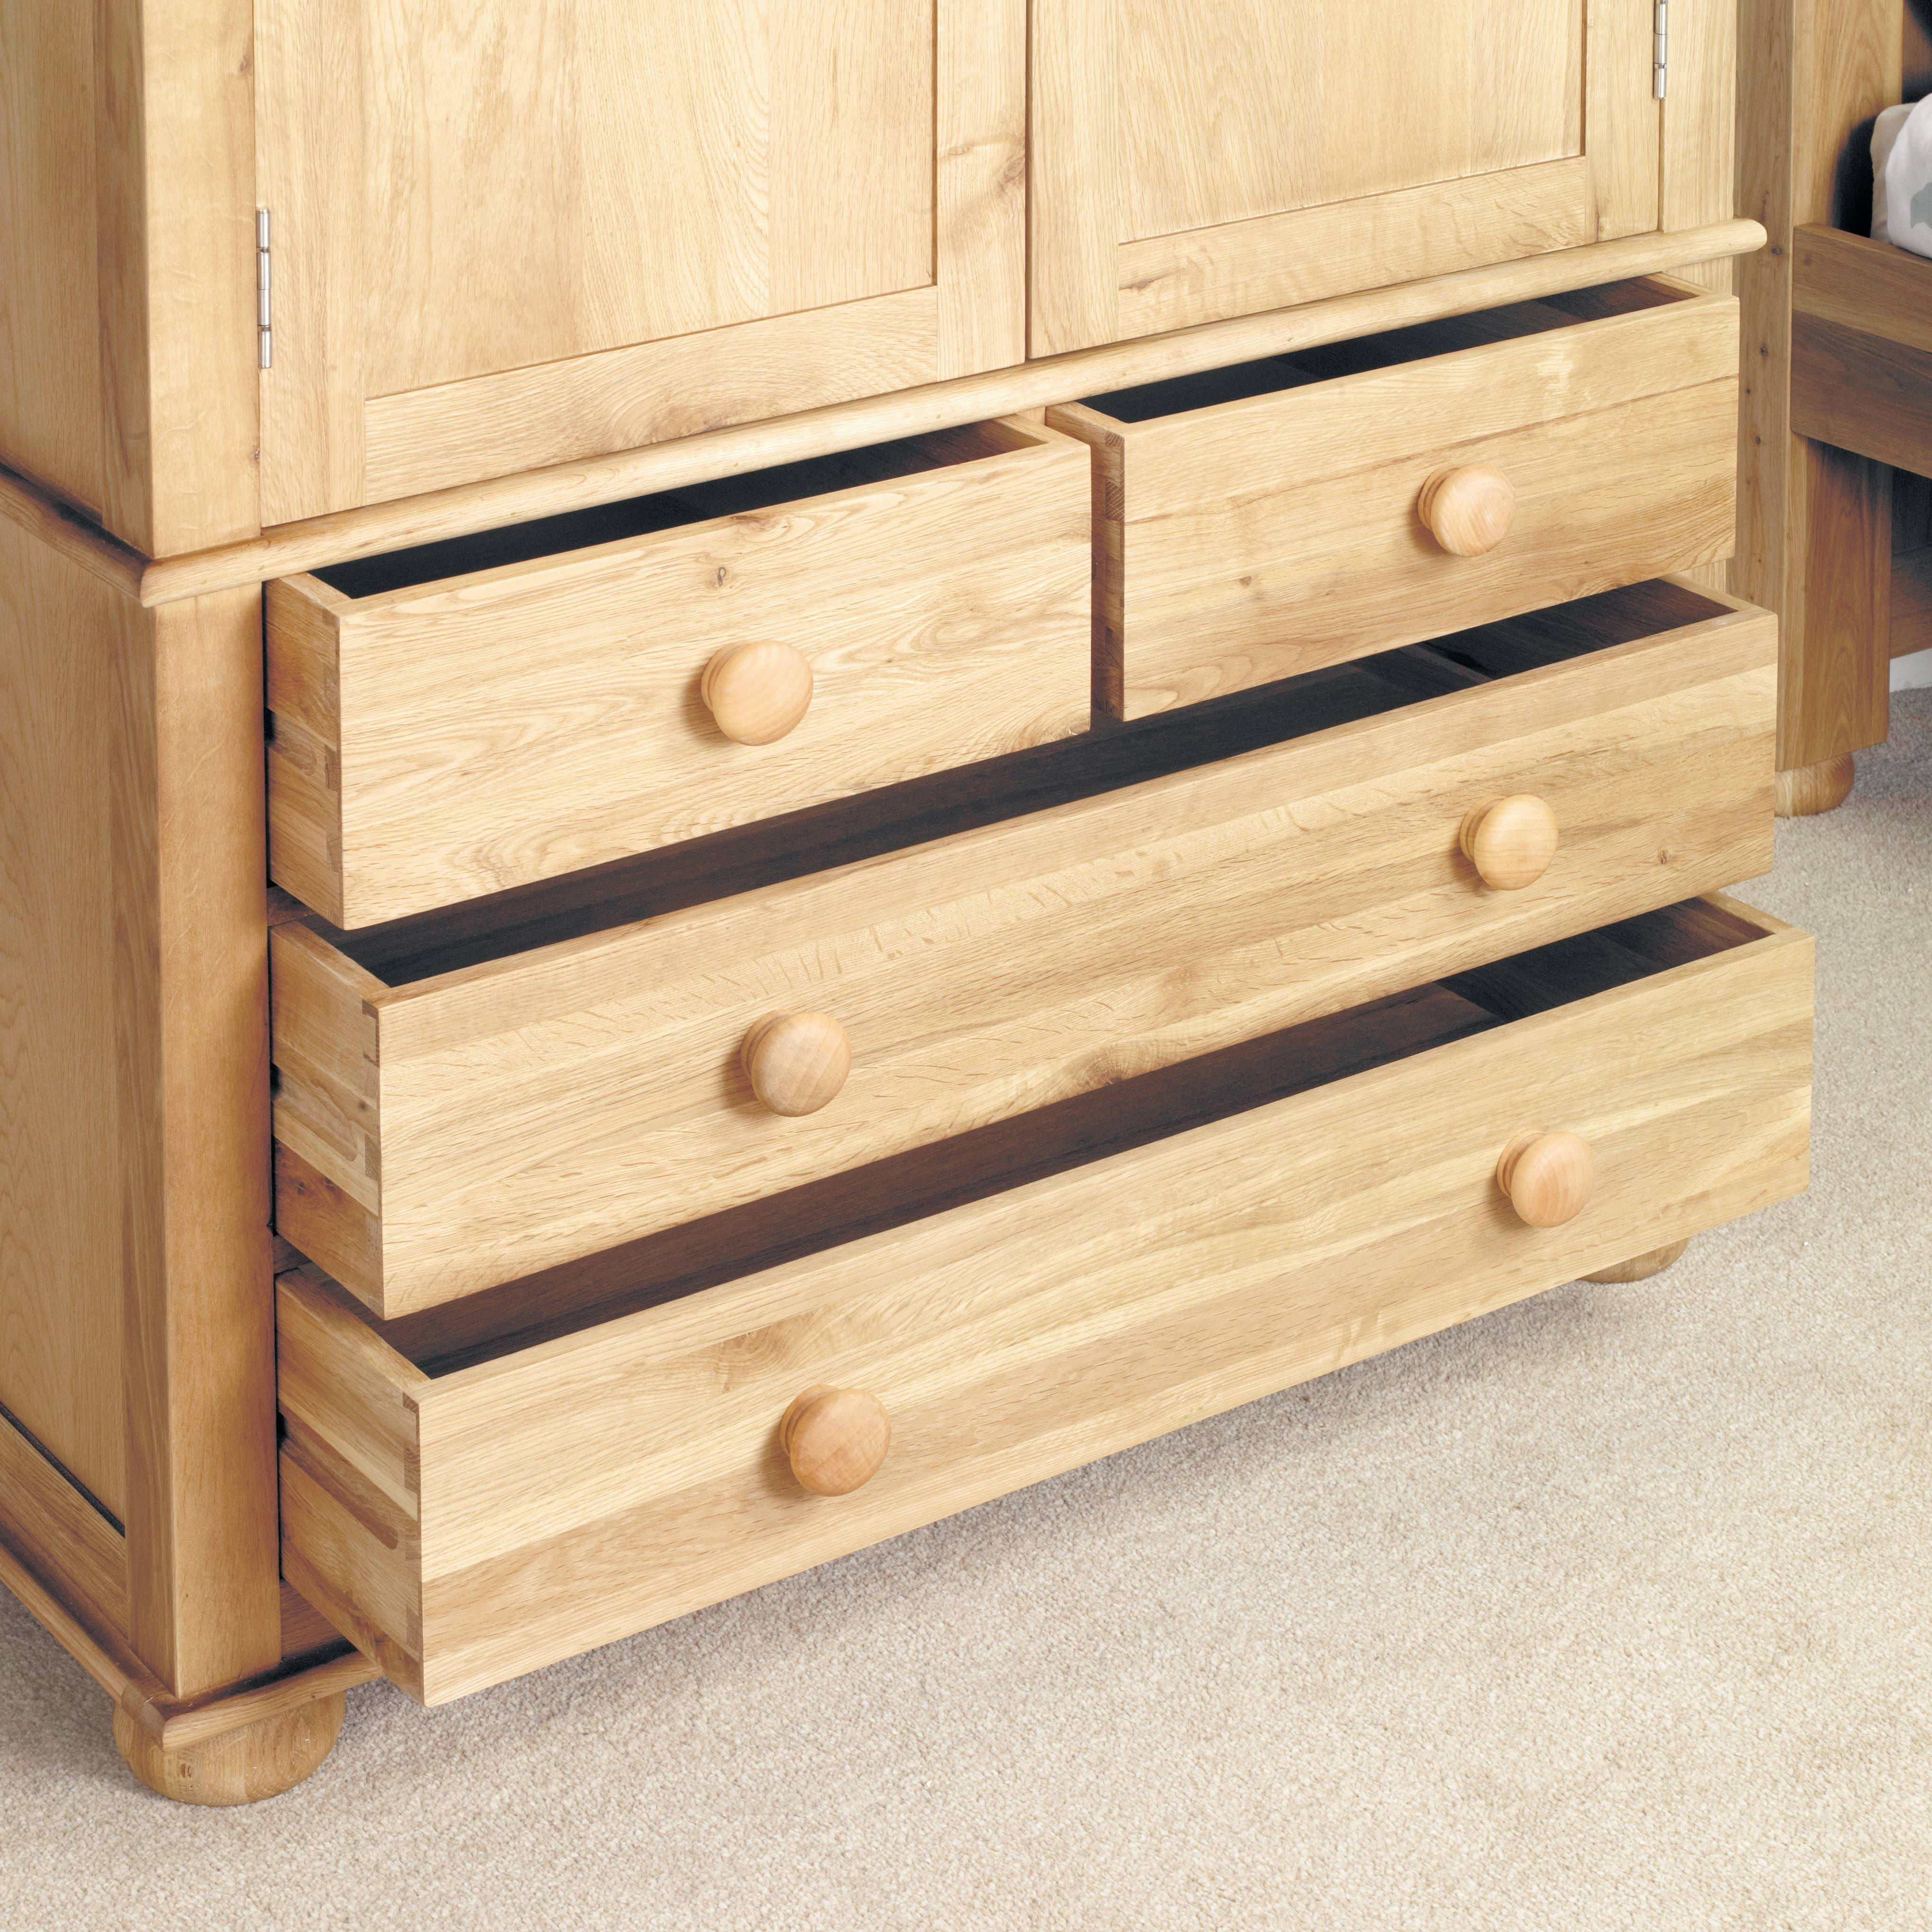 The Best Childrens Double Rail Wardrobes within Double Rail Wardrobe With Drawers (Image 24 of 30)